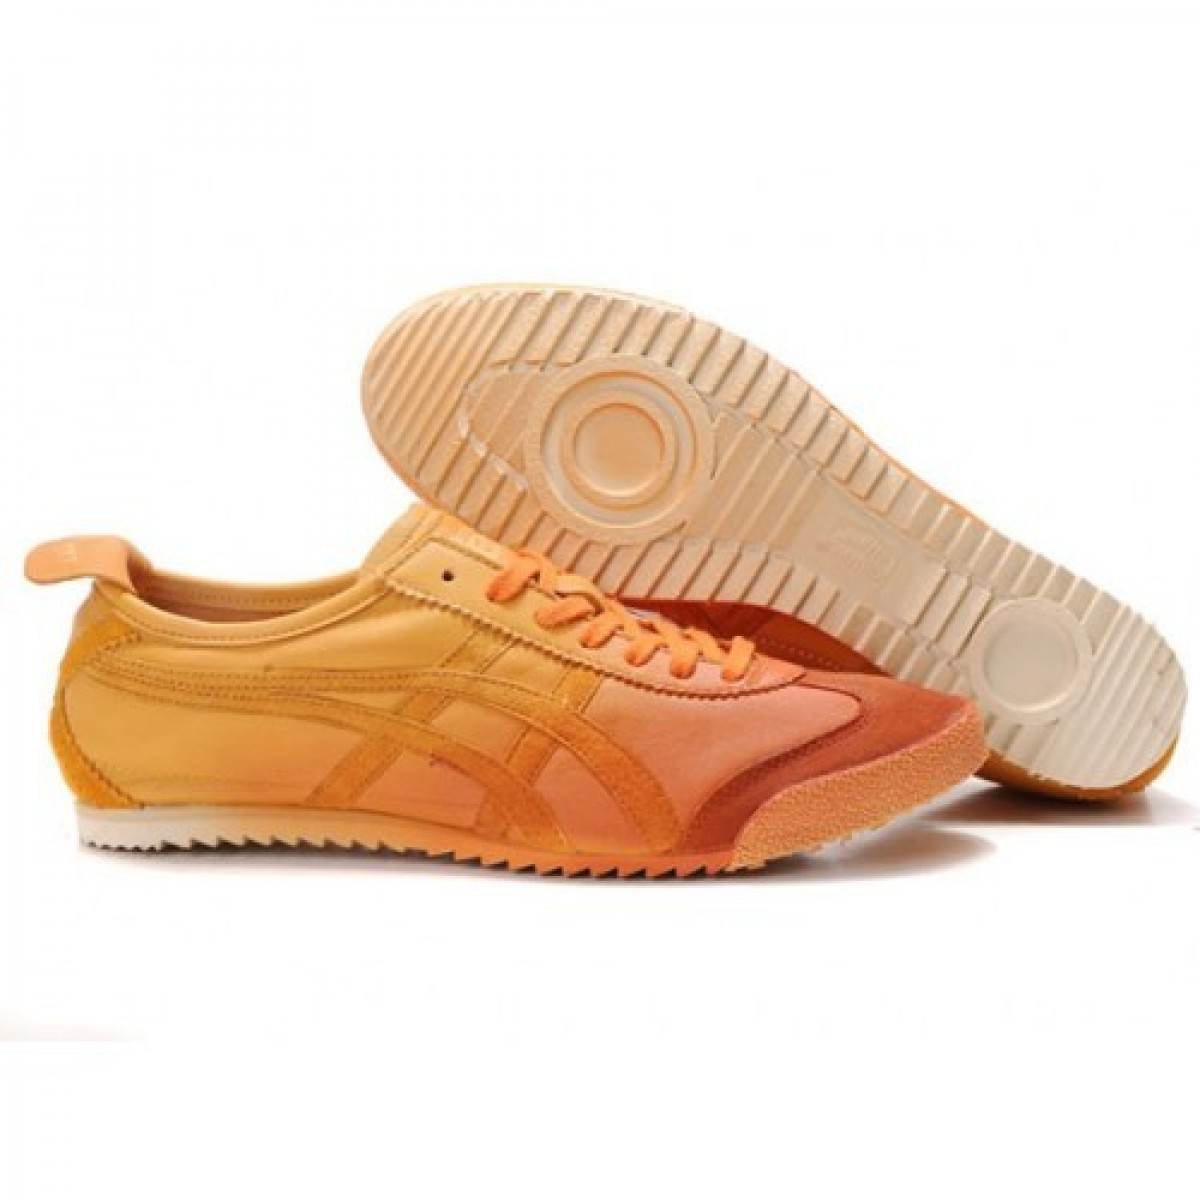 TL5821 Soldes Asics Onitsuka Tiger Mexico 66 Deluxe orange 69213564 Pas Cher